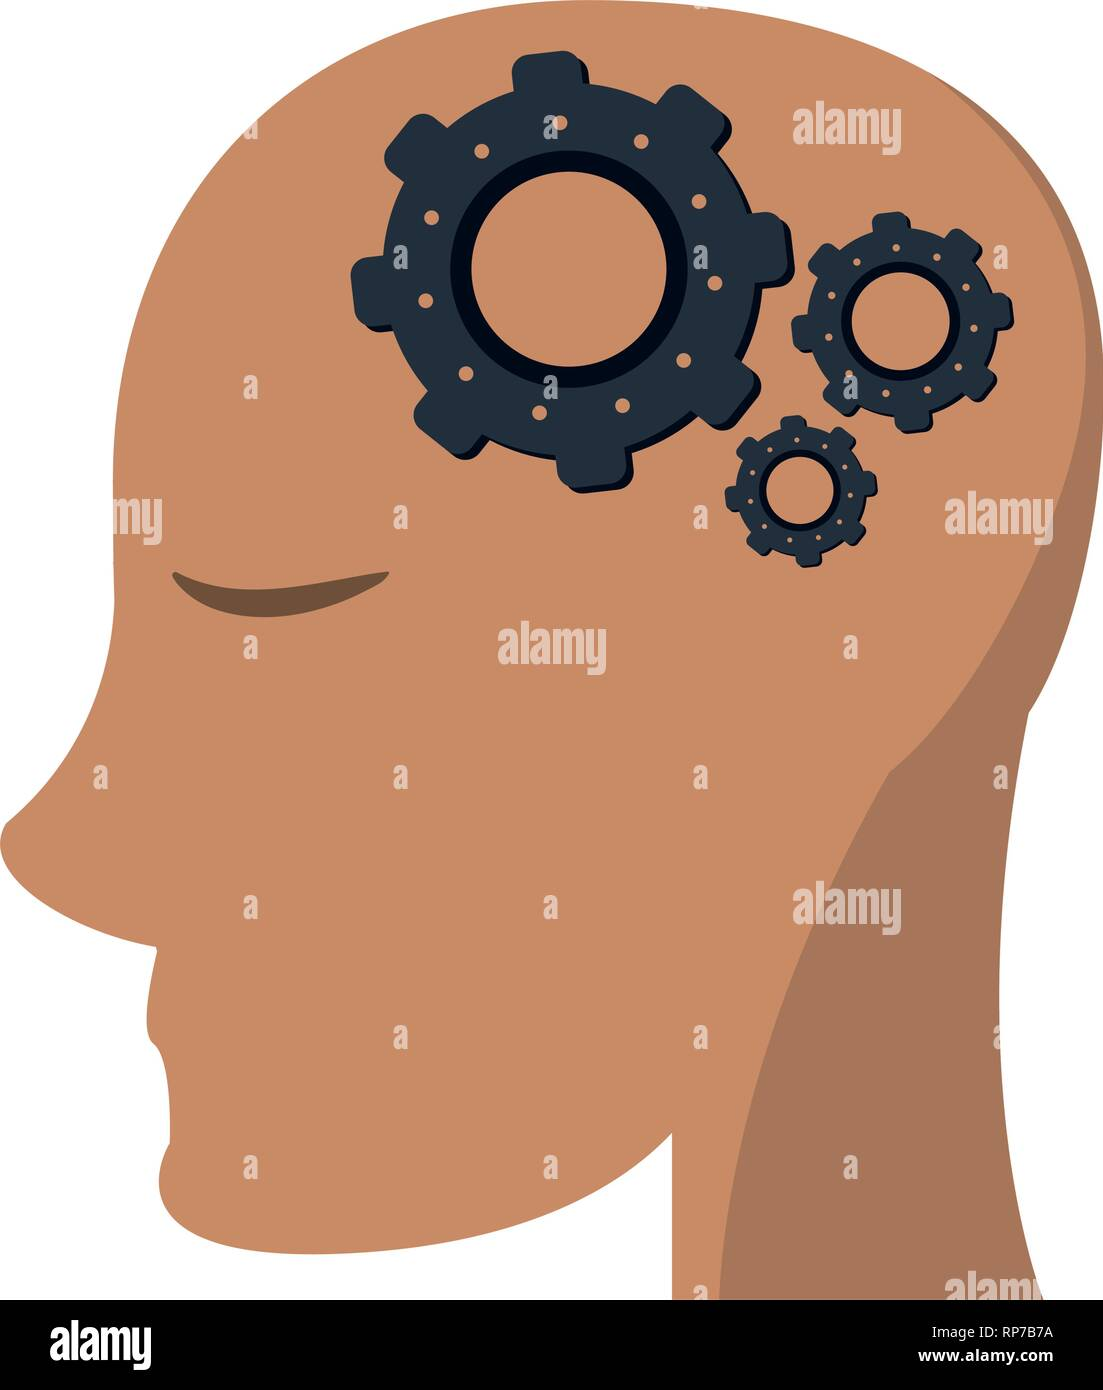 head with gears in mind - Stock Vector